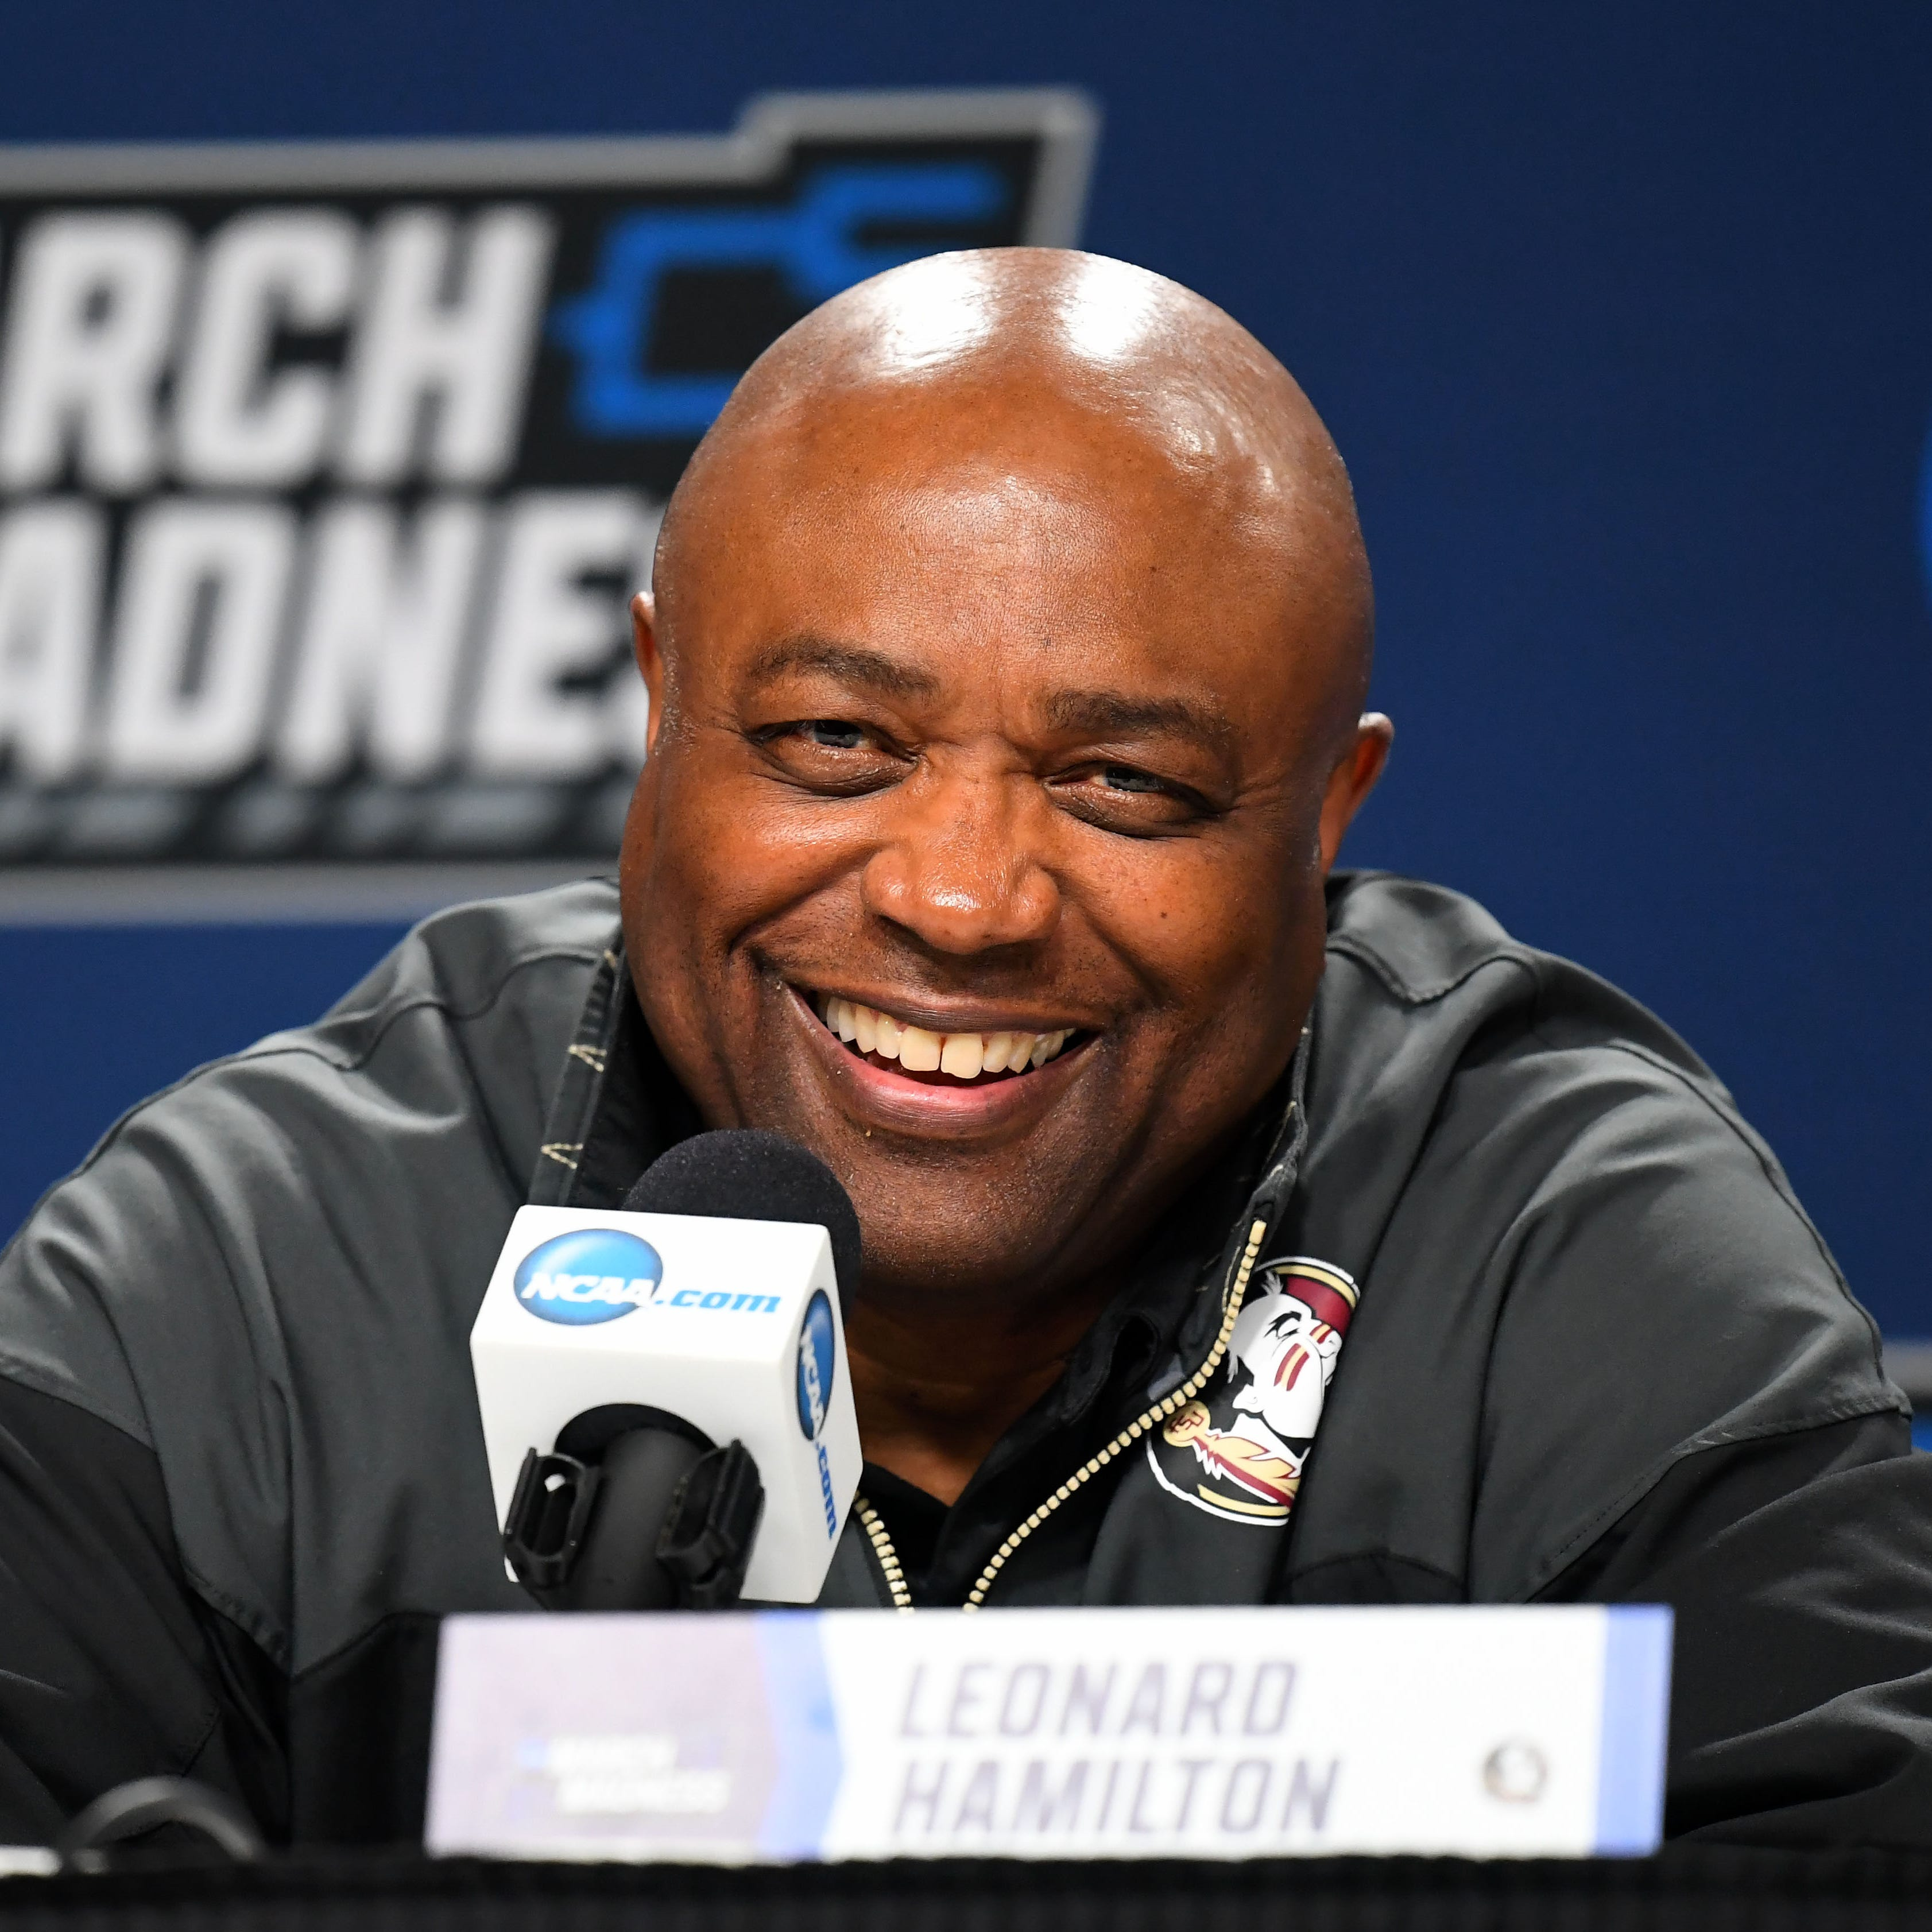 Leonard Hamilton leads FSU back into Sweet 16